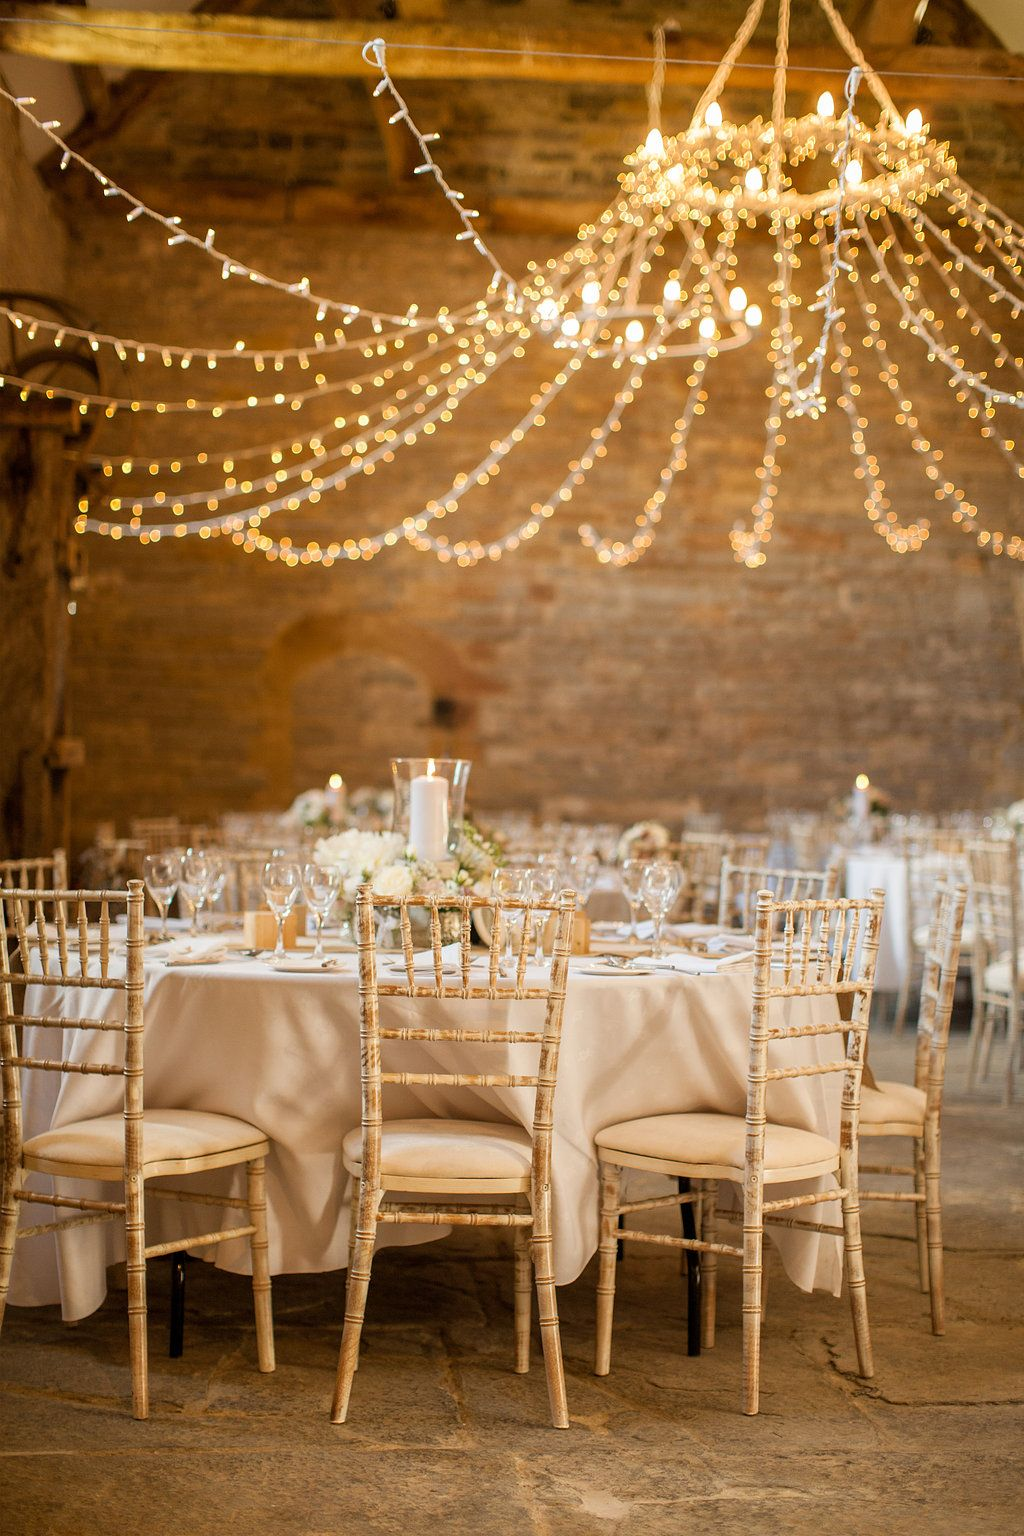 Rustic Chic Wedding Theme | Reception halls, Reception and Chandeliers